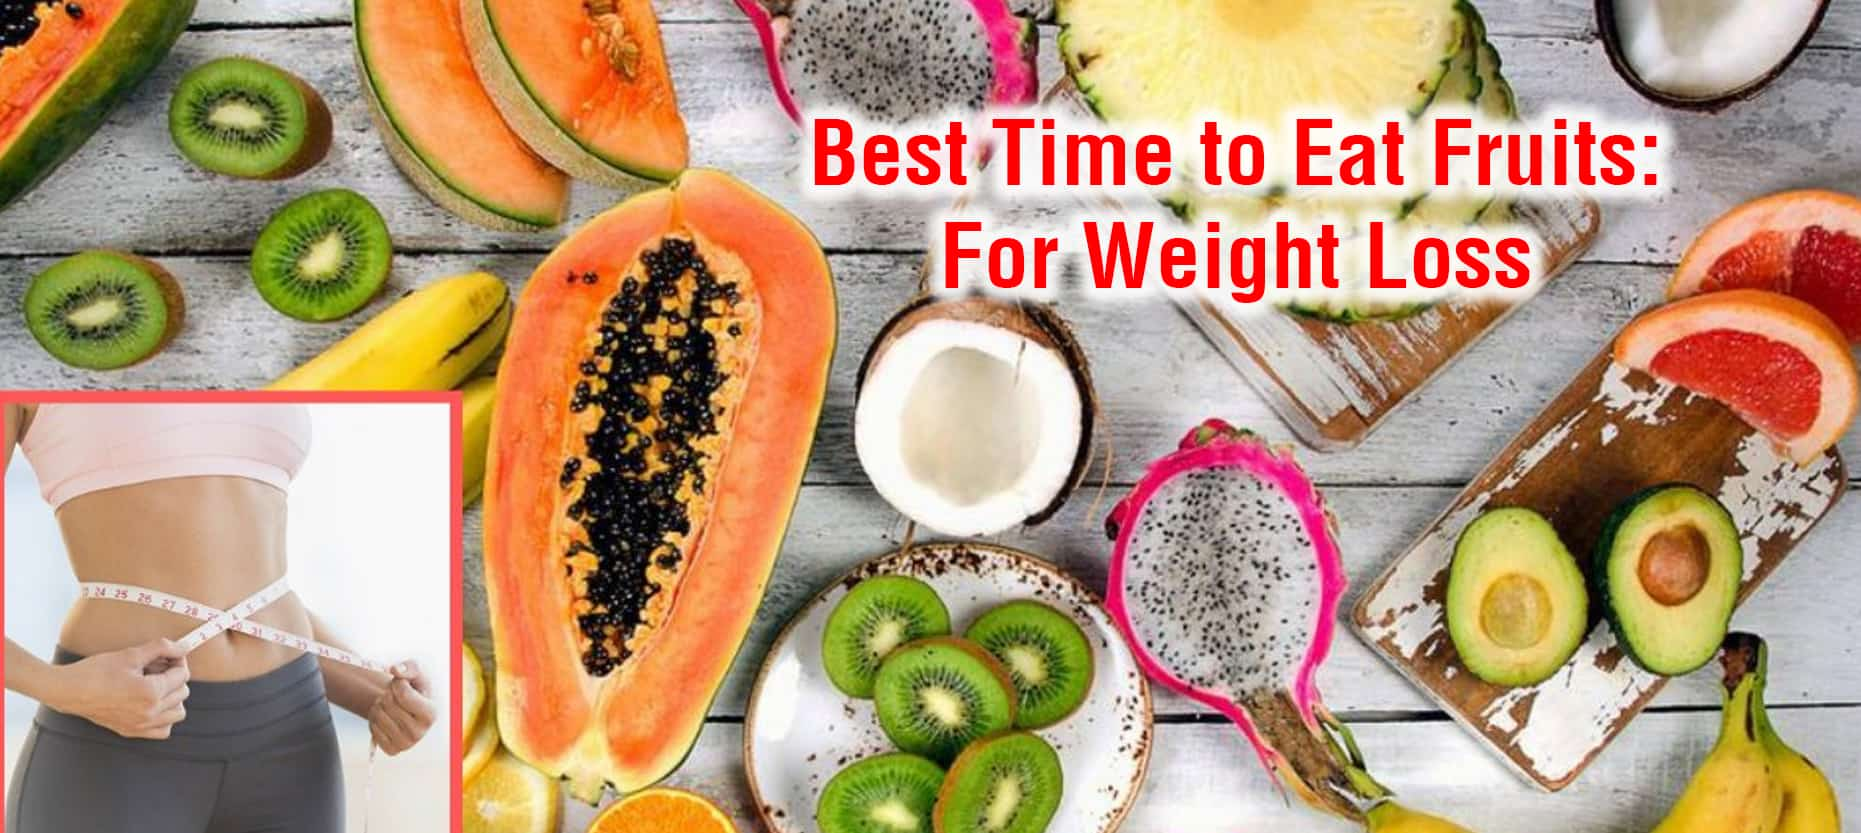 Best Time to Eat Fruits: For Weight Loss